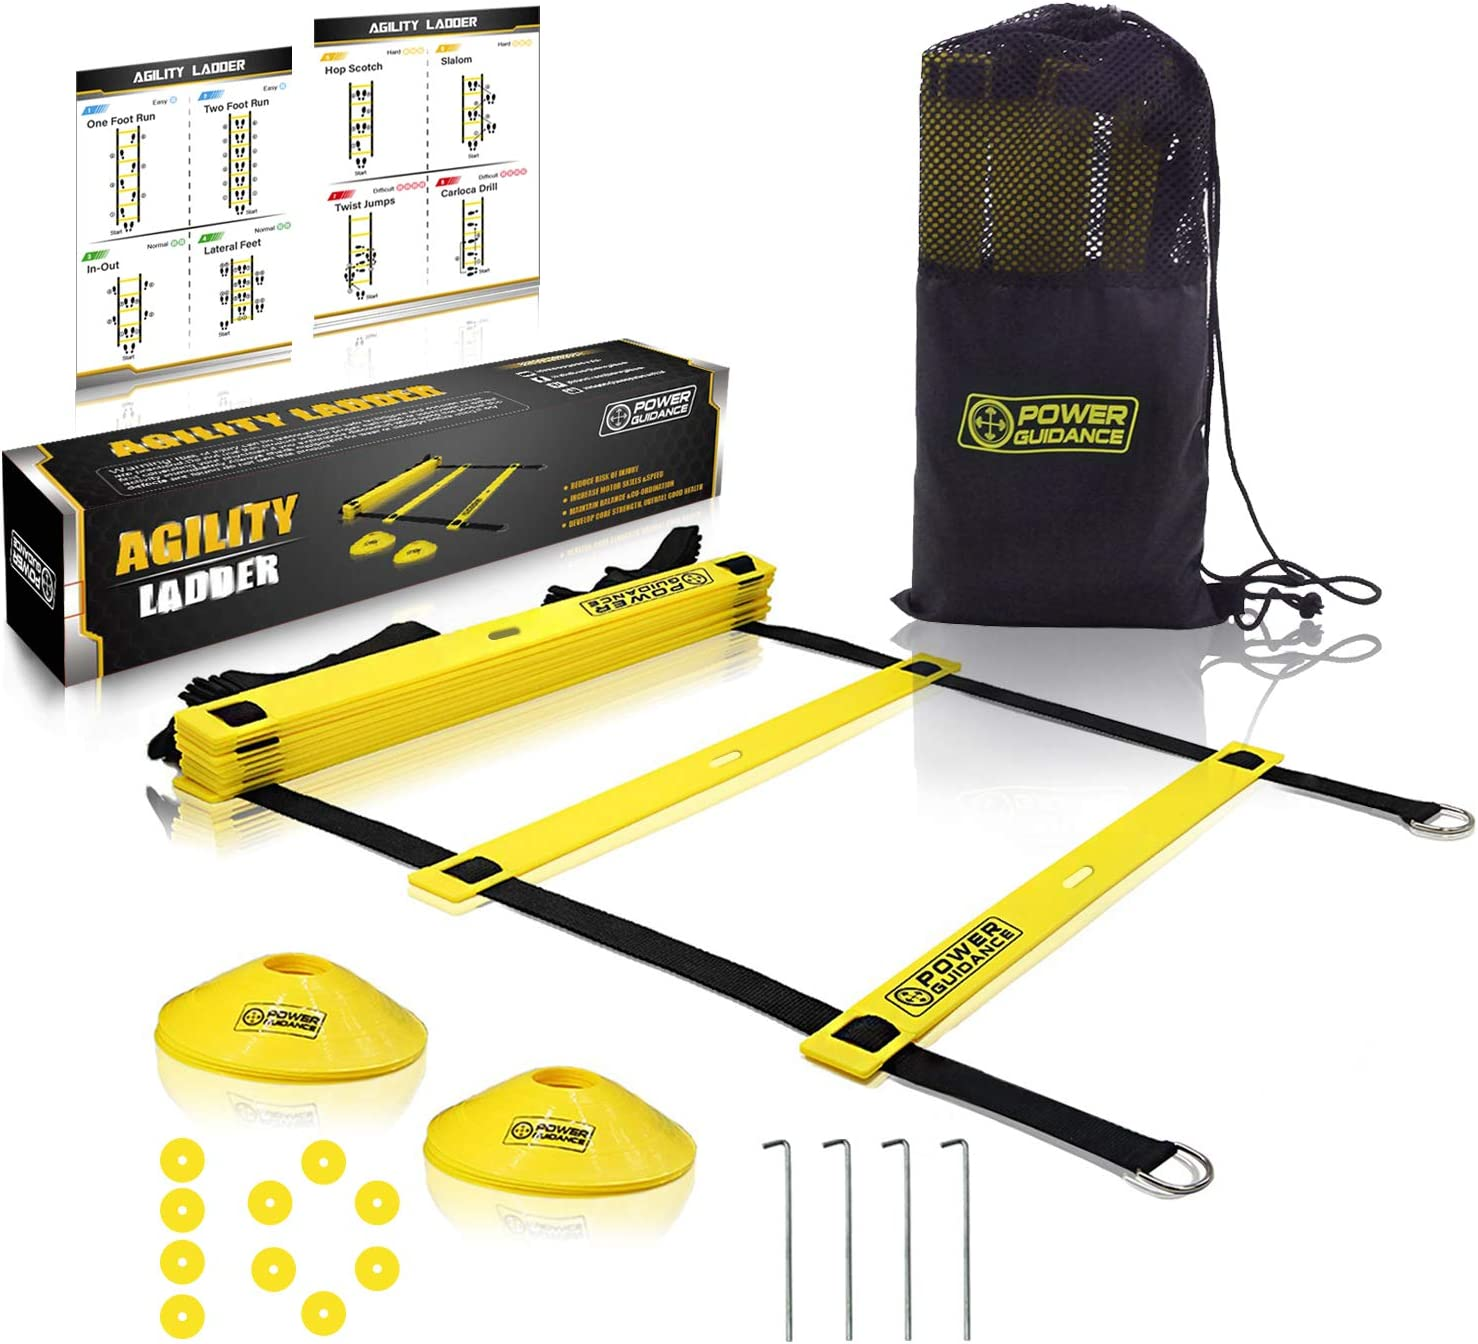 POWER GUIDANCE Agility Ladder (20 Feet) for Speed Agility Training & Quick Footwork Exercise - with 12 Plastic Rungs, 4 Pegs, Carry Bag & 10 Sports Cones